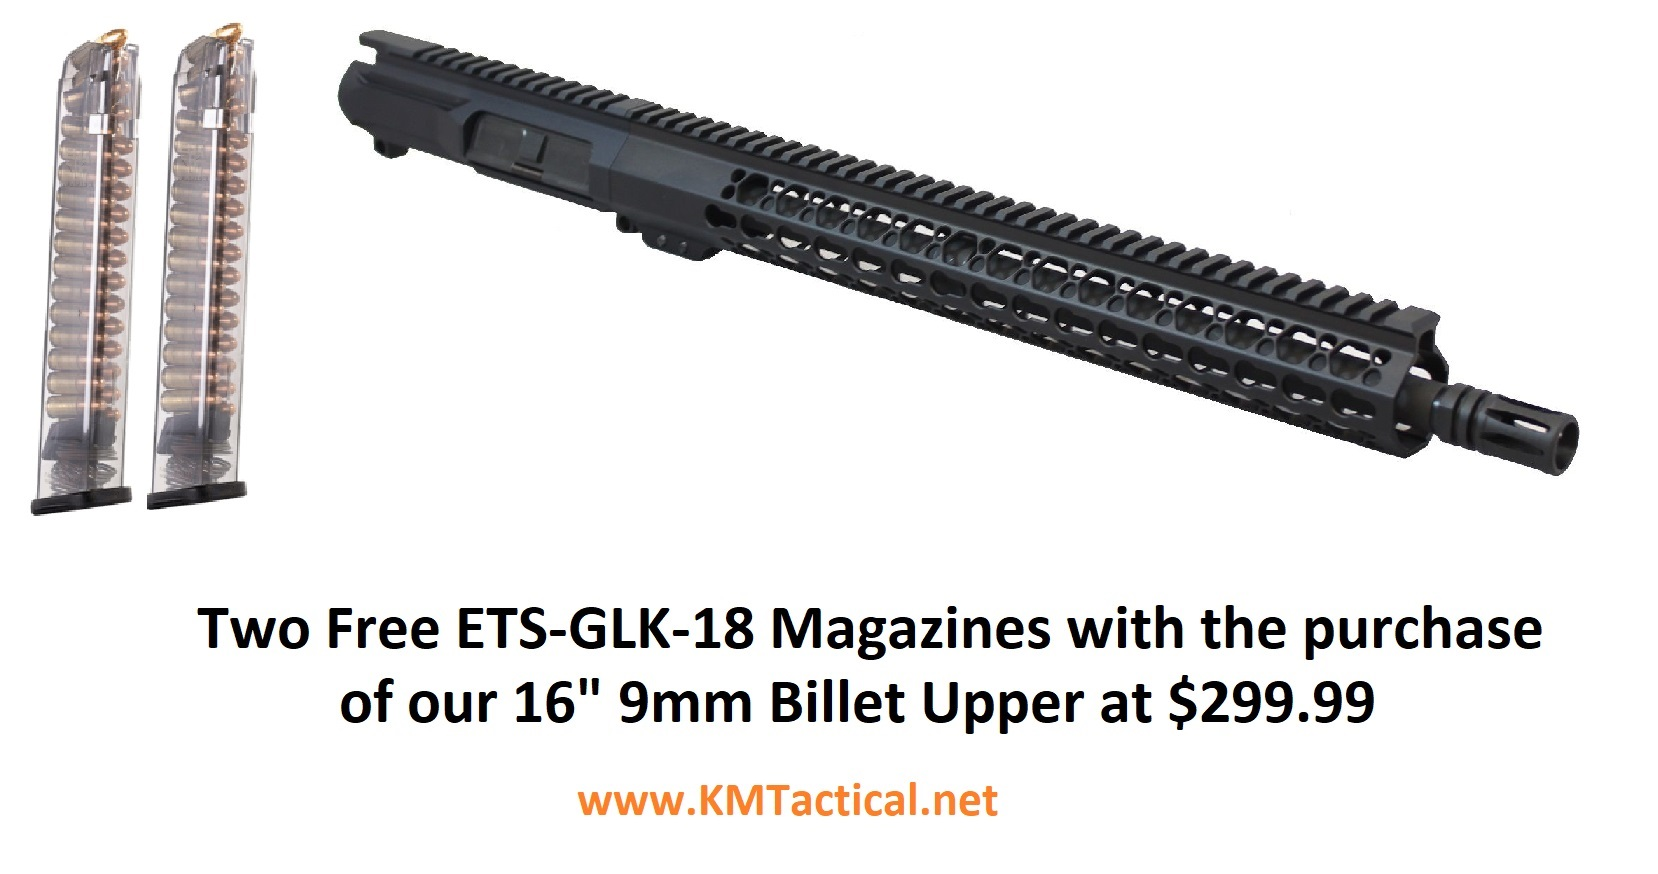 KM Tactical 16 Inch Billet 9MM Complete Upper w/ 2 Free ETS Glock Magazines  - $299 99